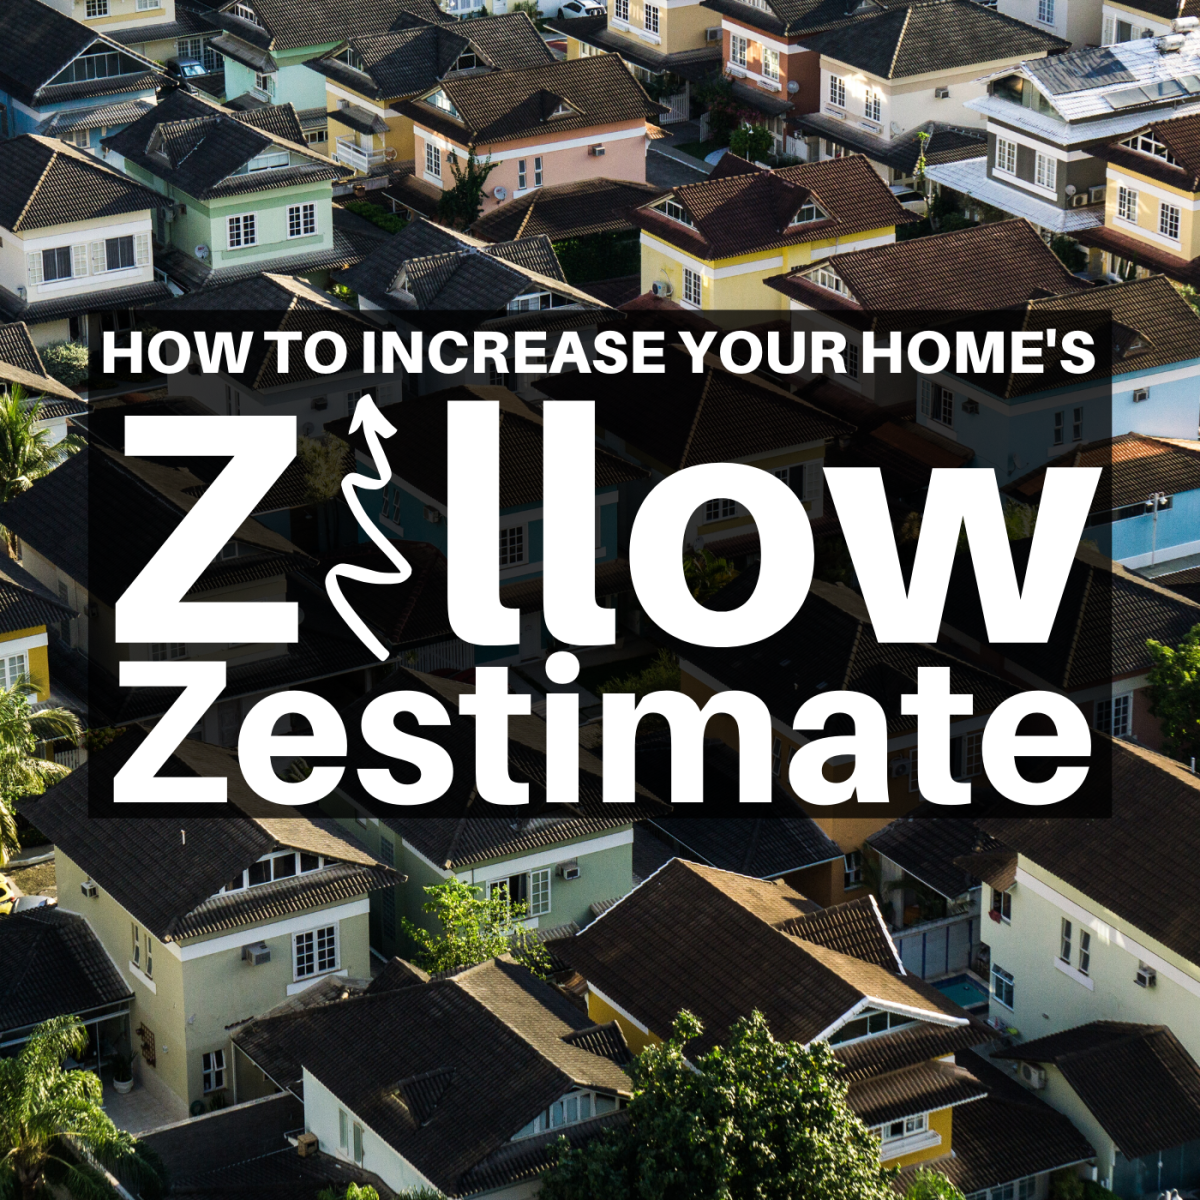 Modern home buyers look to sites like Zillow and Trulia to gauge what properties are worth. Make sure your home's valuation is as high as it should be!